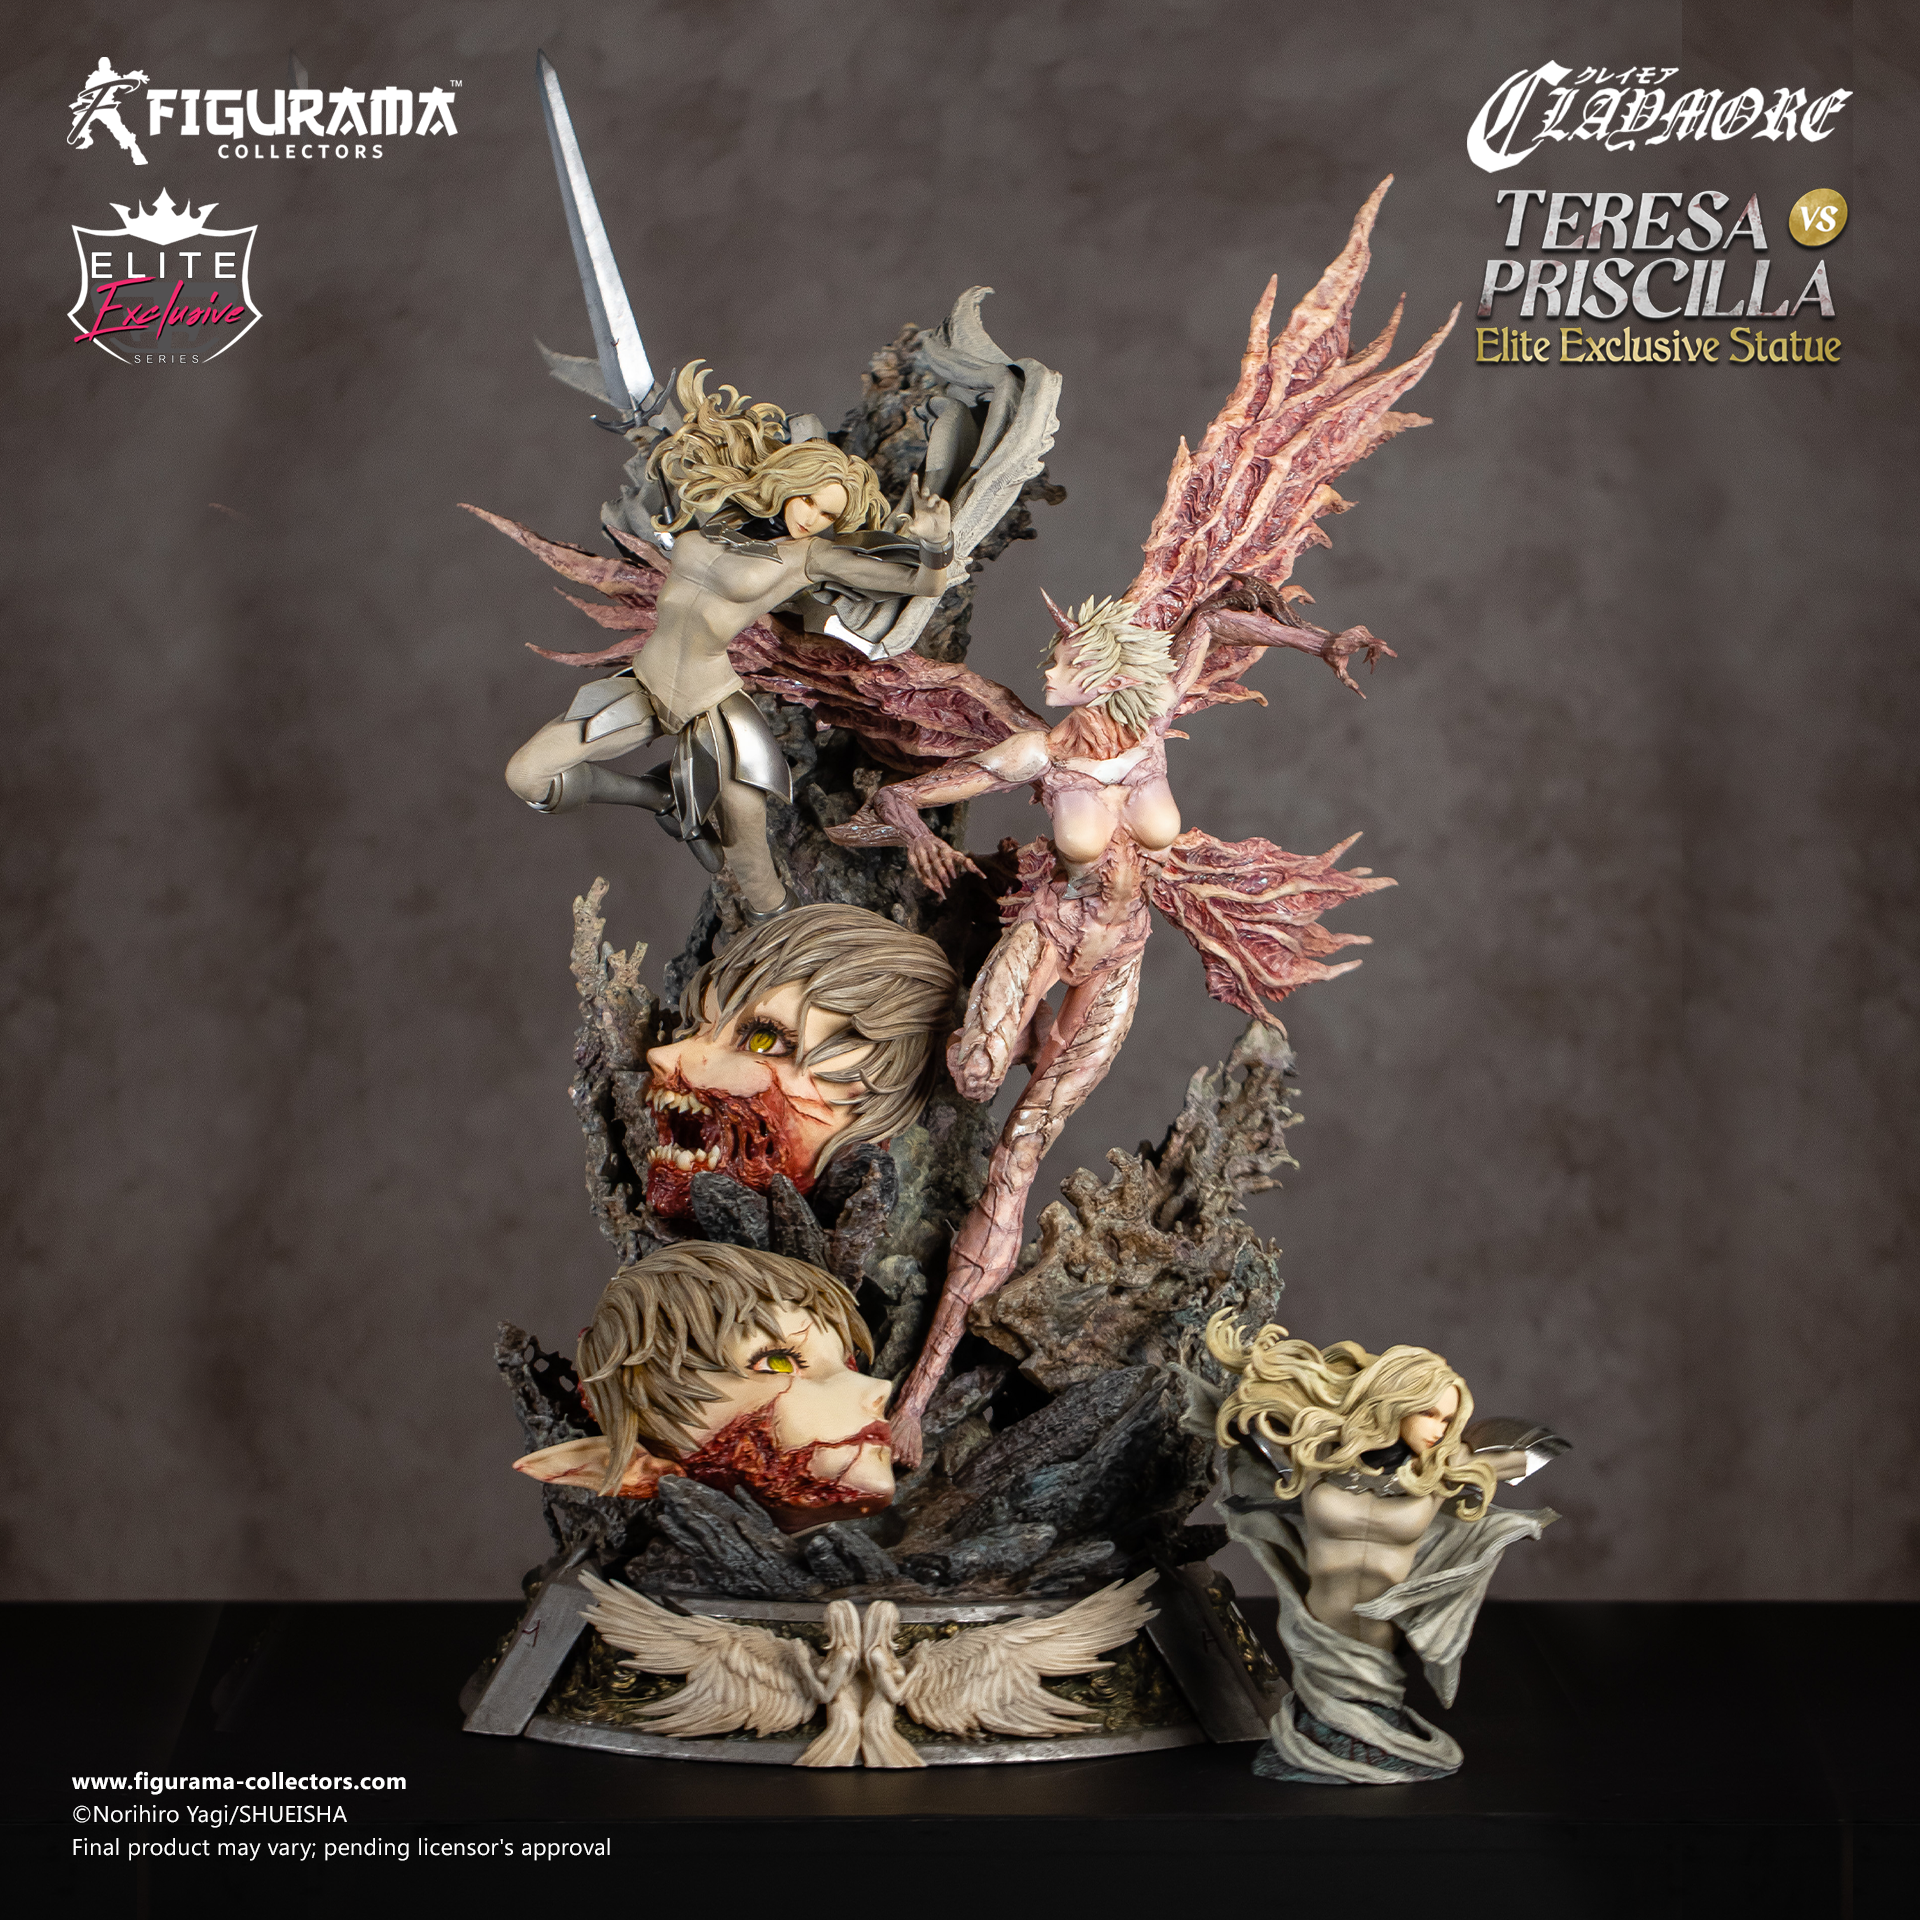 Claymore: Teresa vs. Priscilla Elite Exclusive Statue